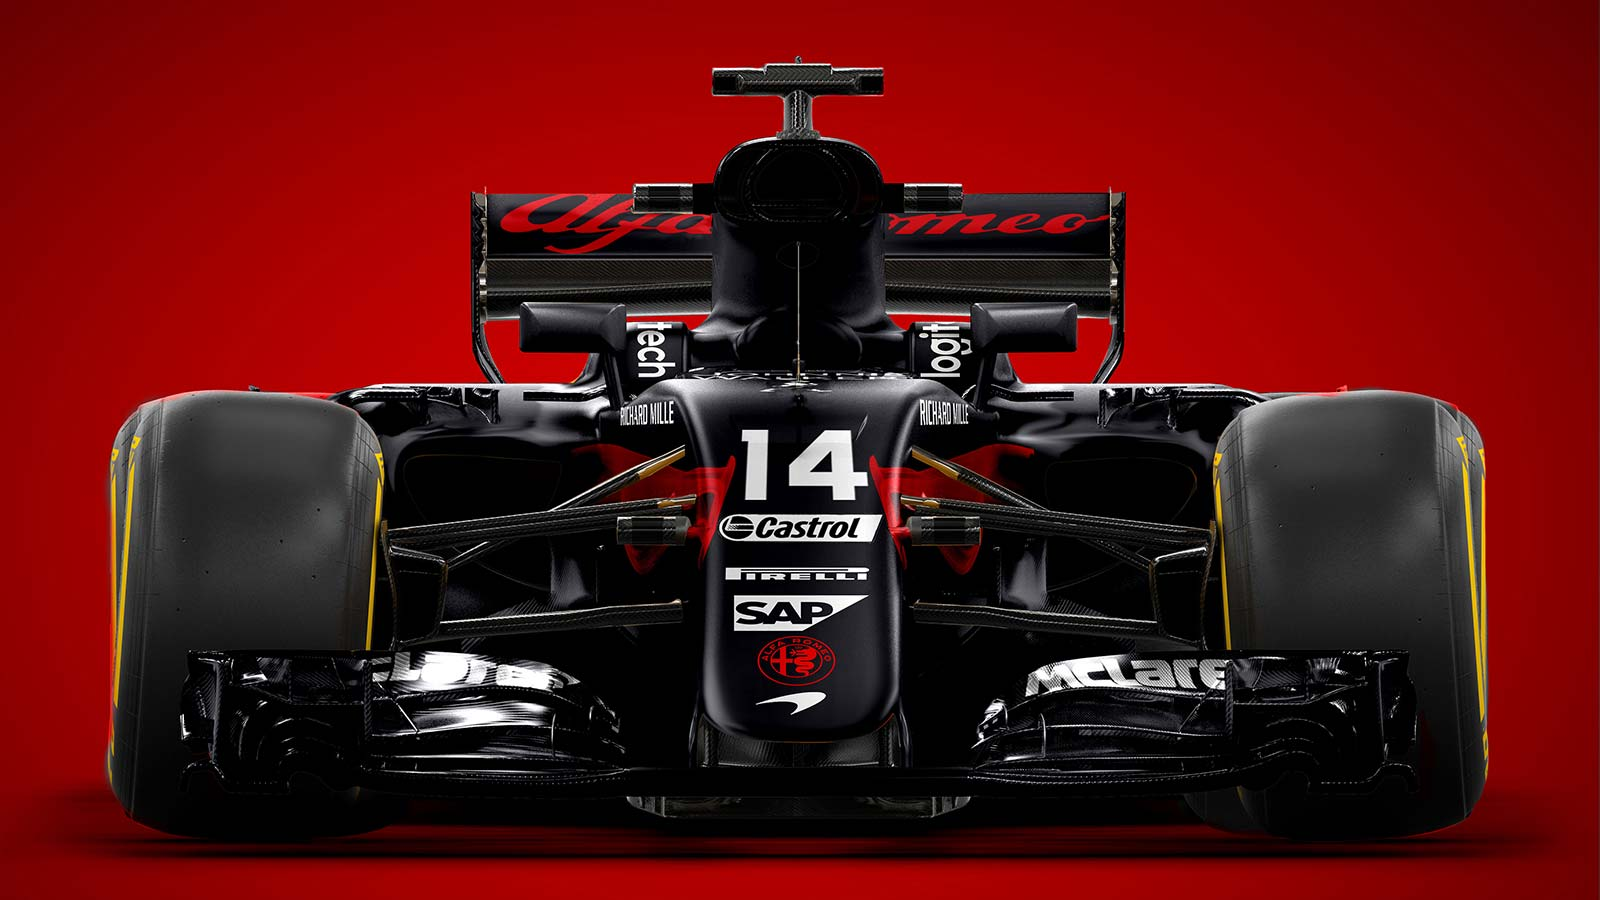 alfa romeo torna in formula 1 con la sauber foto ufficiali. Black Bedroom Furniture Sets. Home Design Ideas